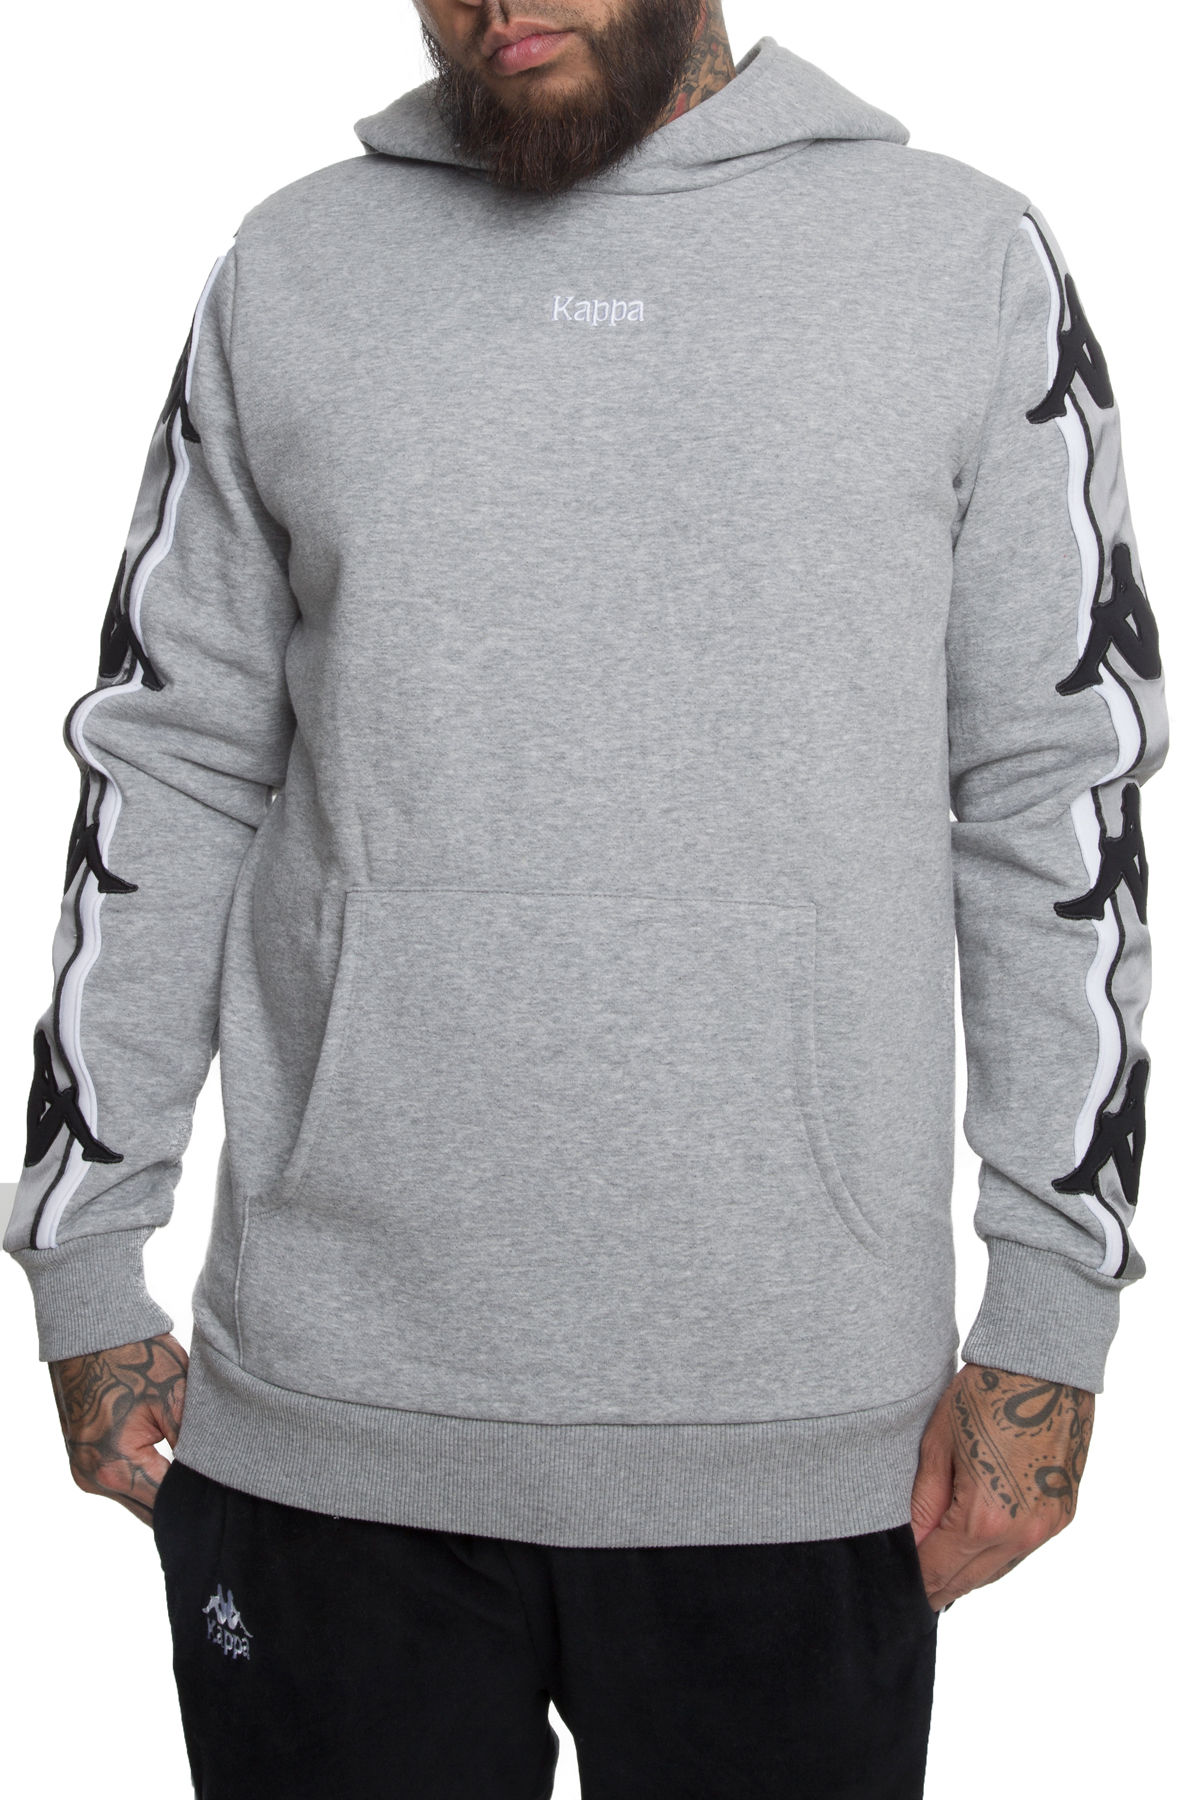 Image of The Authentic Bzaliab Pullover Hoodie in Medium Grey and Grey Silver